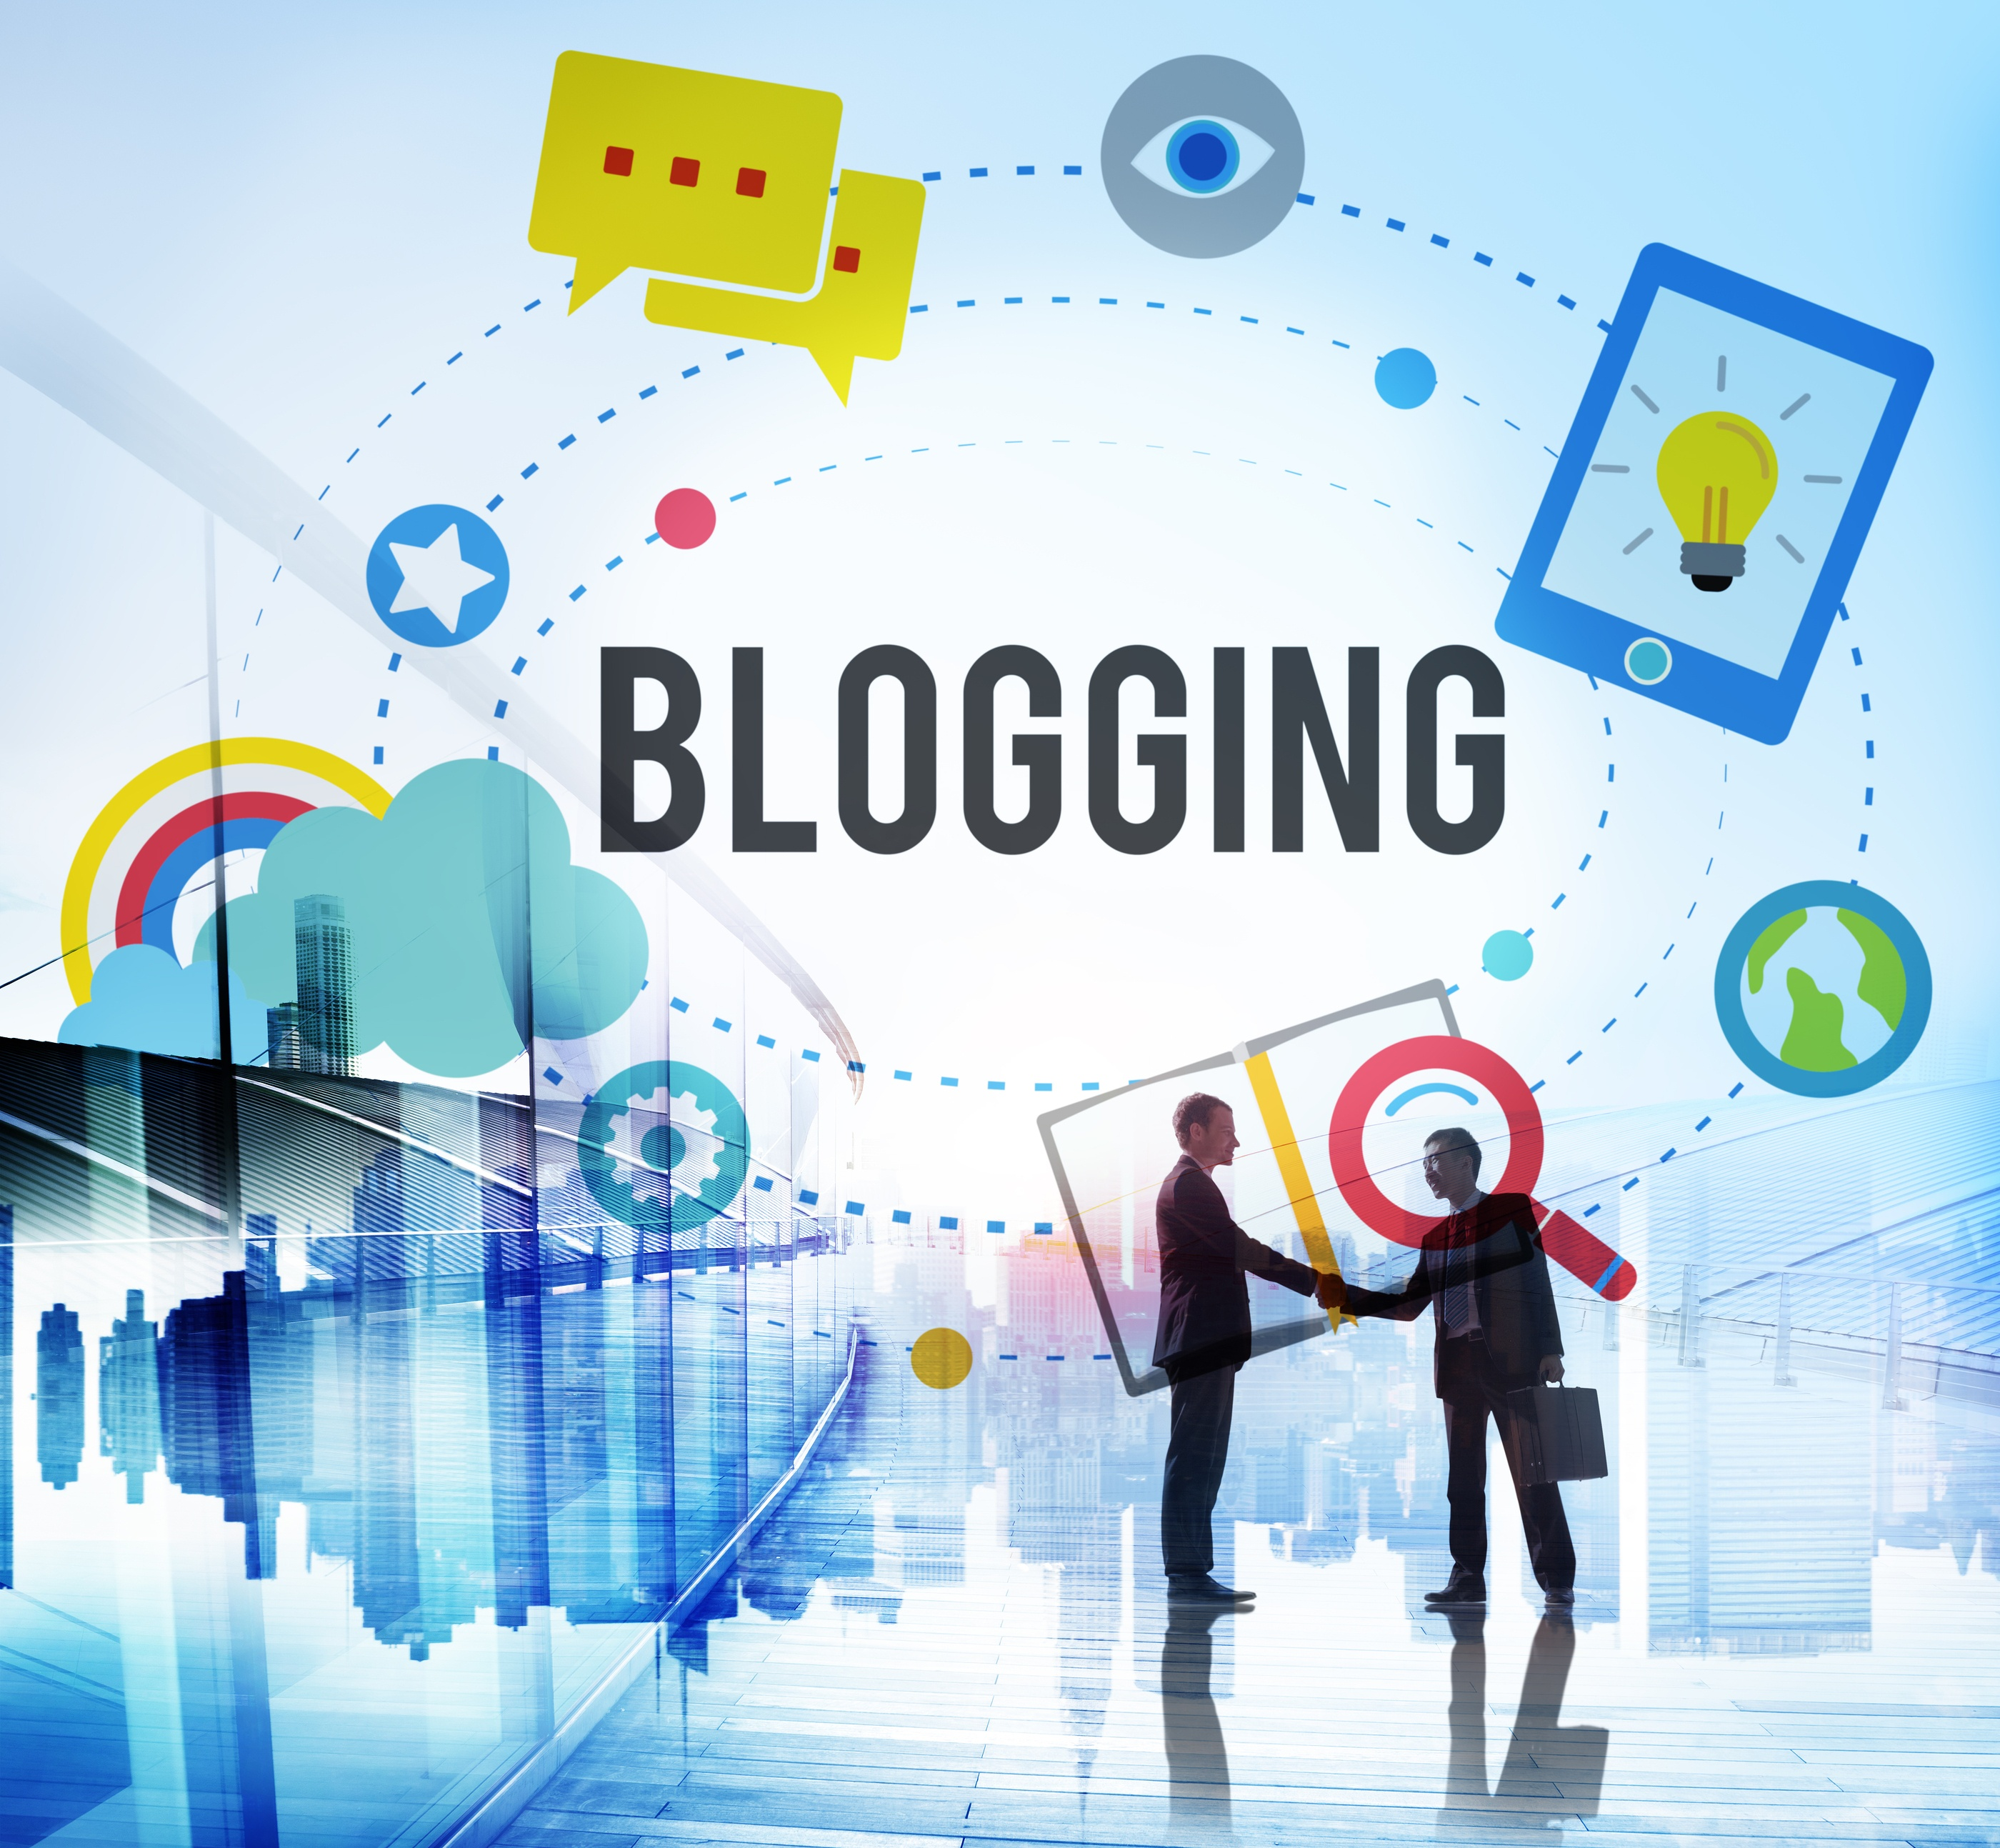 Why Should Small Businesses Blog?